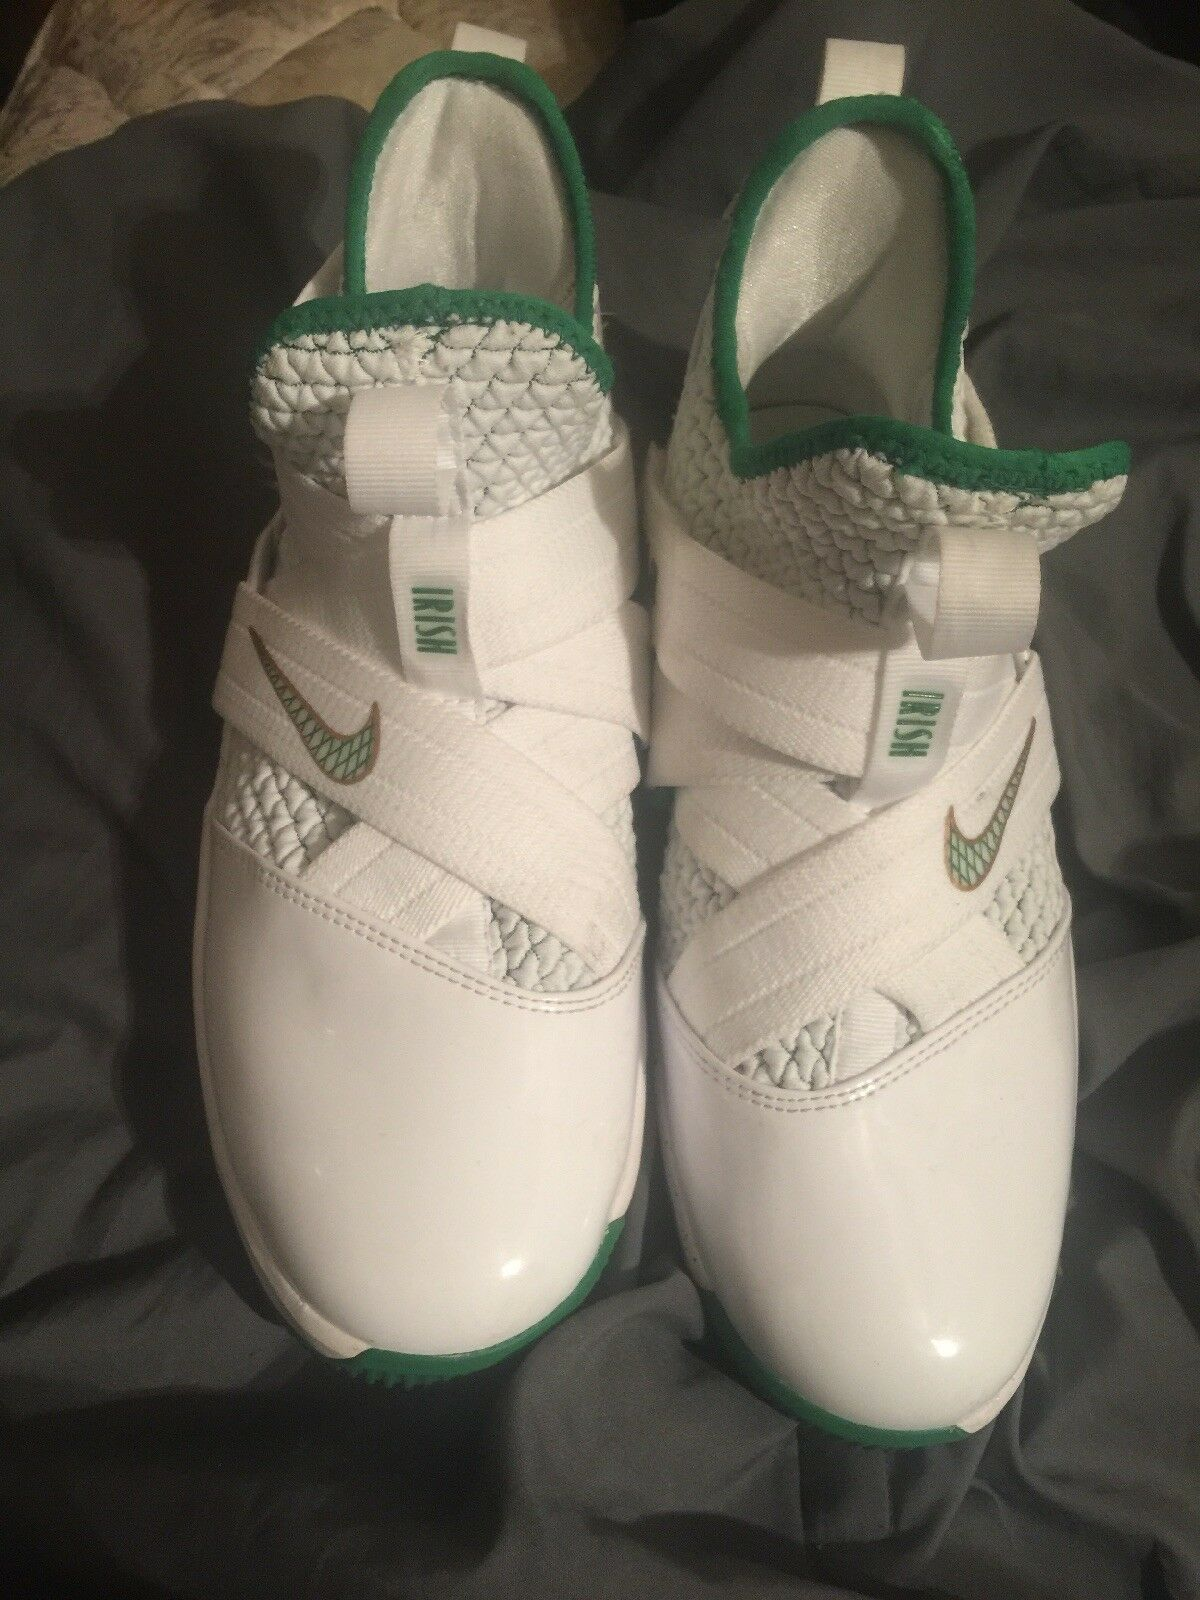 4d3ad4970cbd ... Nike Lebron Soldier 12 XII SVSM SVSM SVSM YouthAO2609-100 White Green  shoes Size 5Y ...